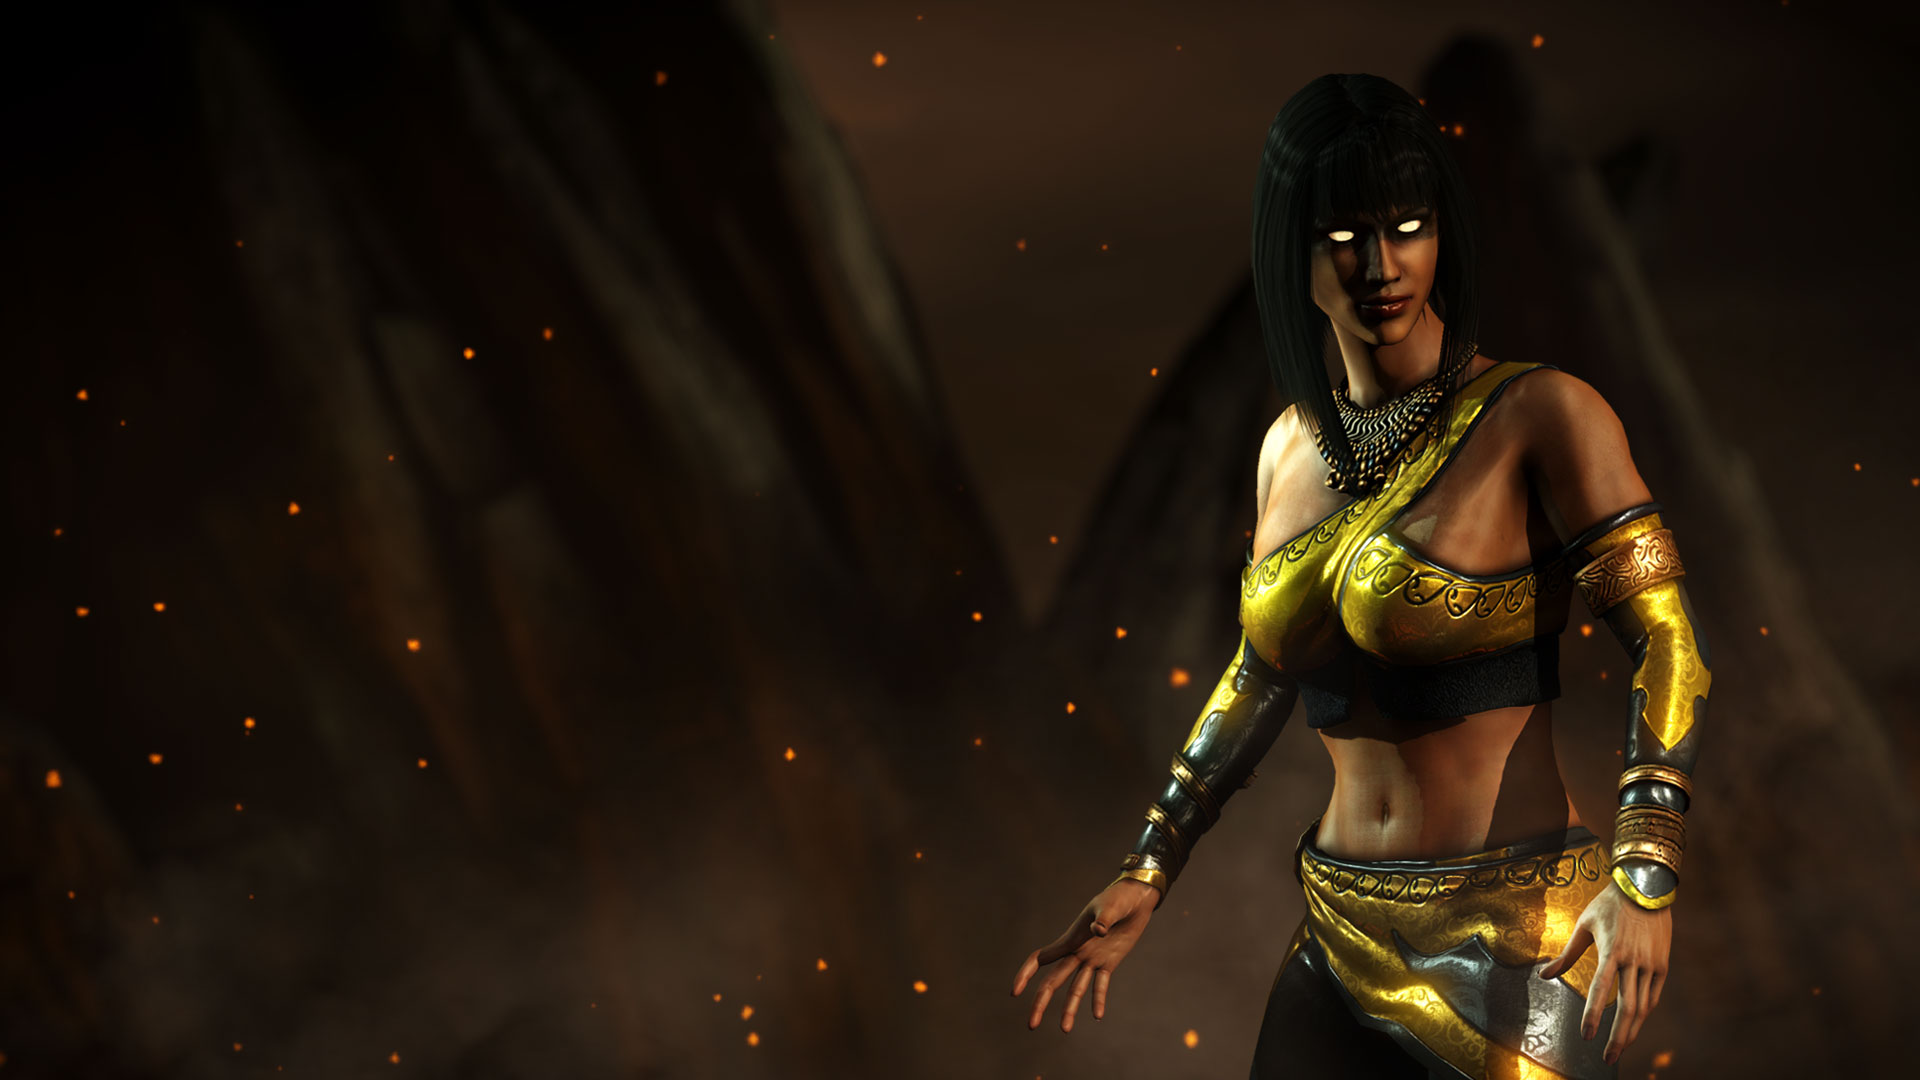 Ps4 Wallpaper Hd Mkwarehouse Mortal Kombat X Tanya